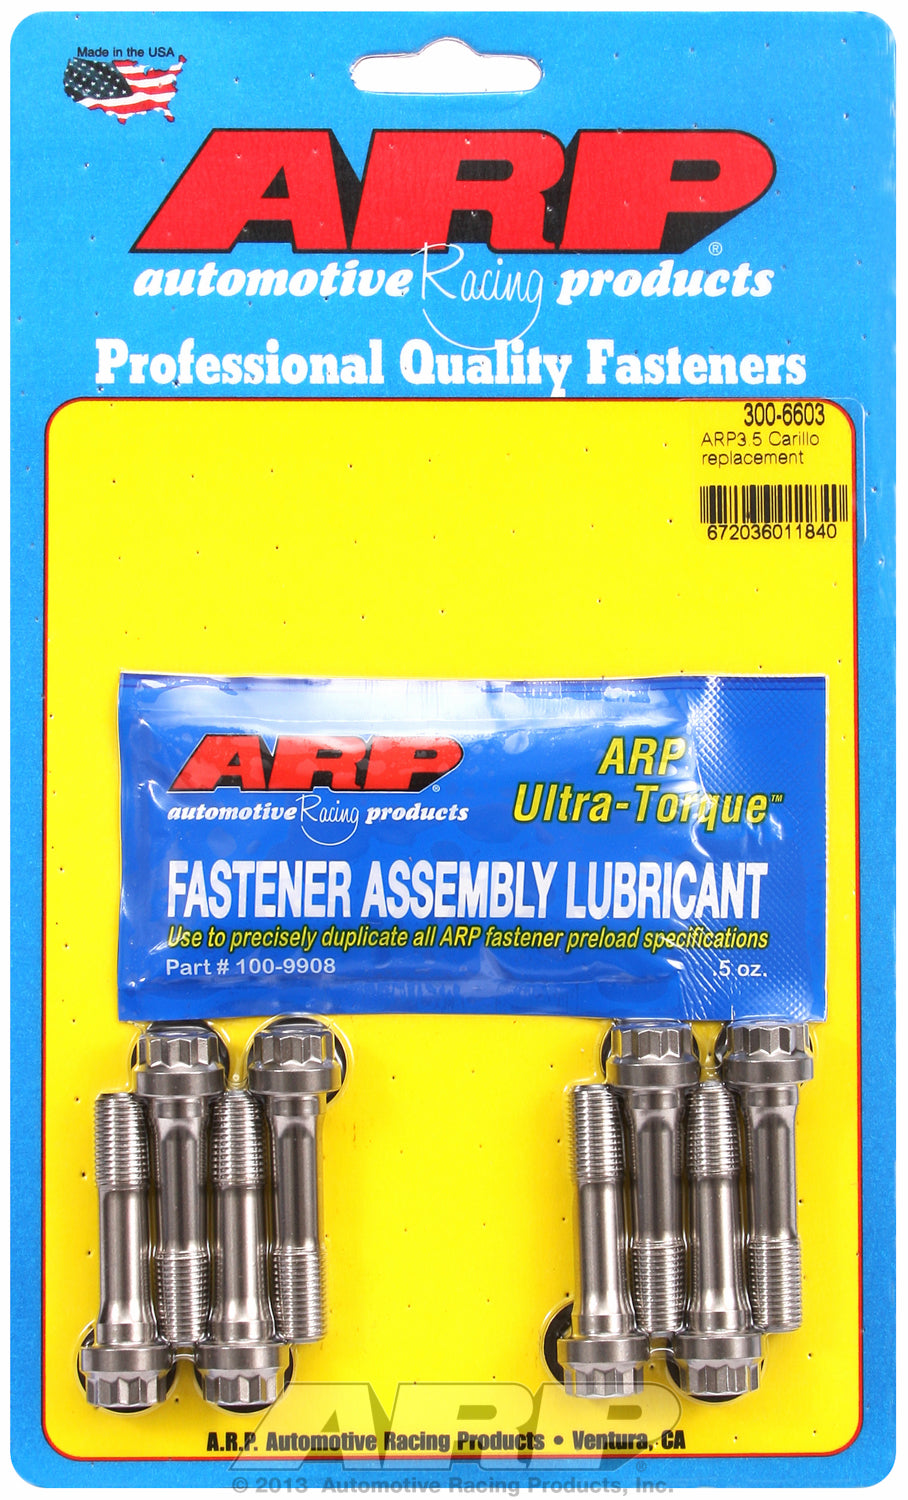 ARP3.5 General Replacement Rod Bolt Kit Complete - Set of 8